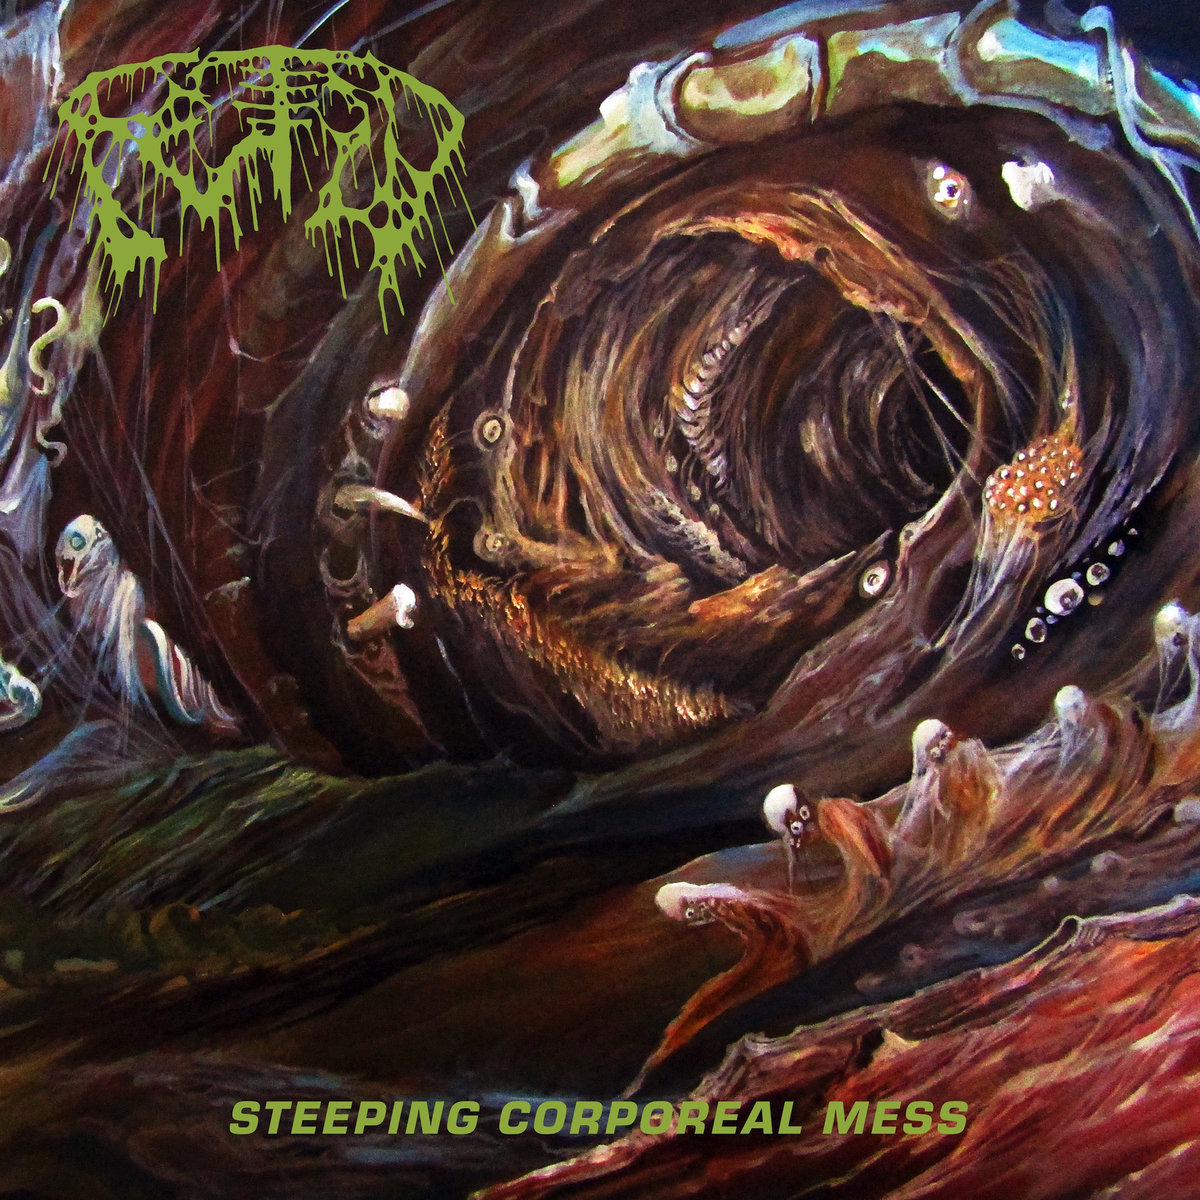 Steeping Corporeal Mess by Fetid